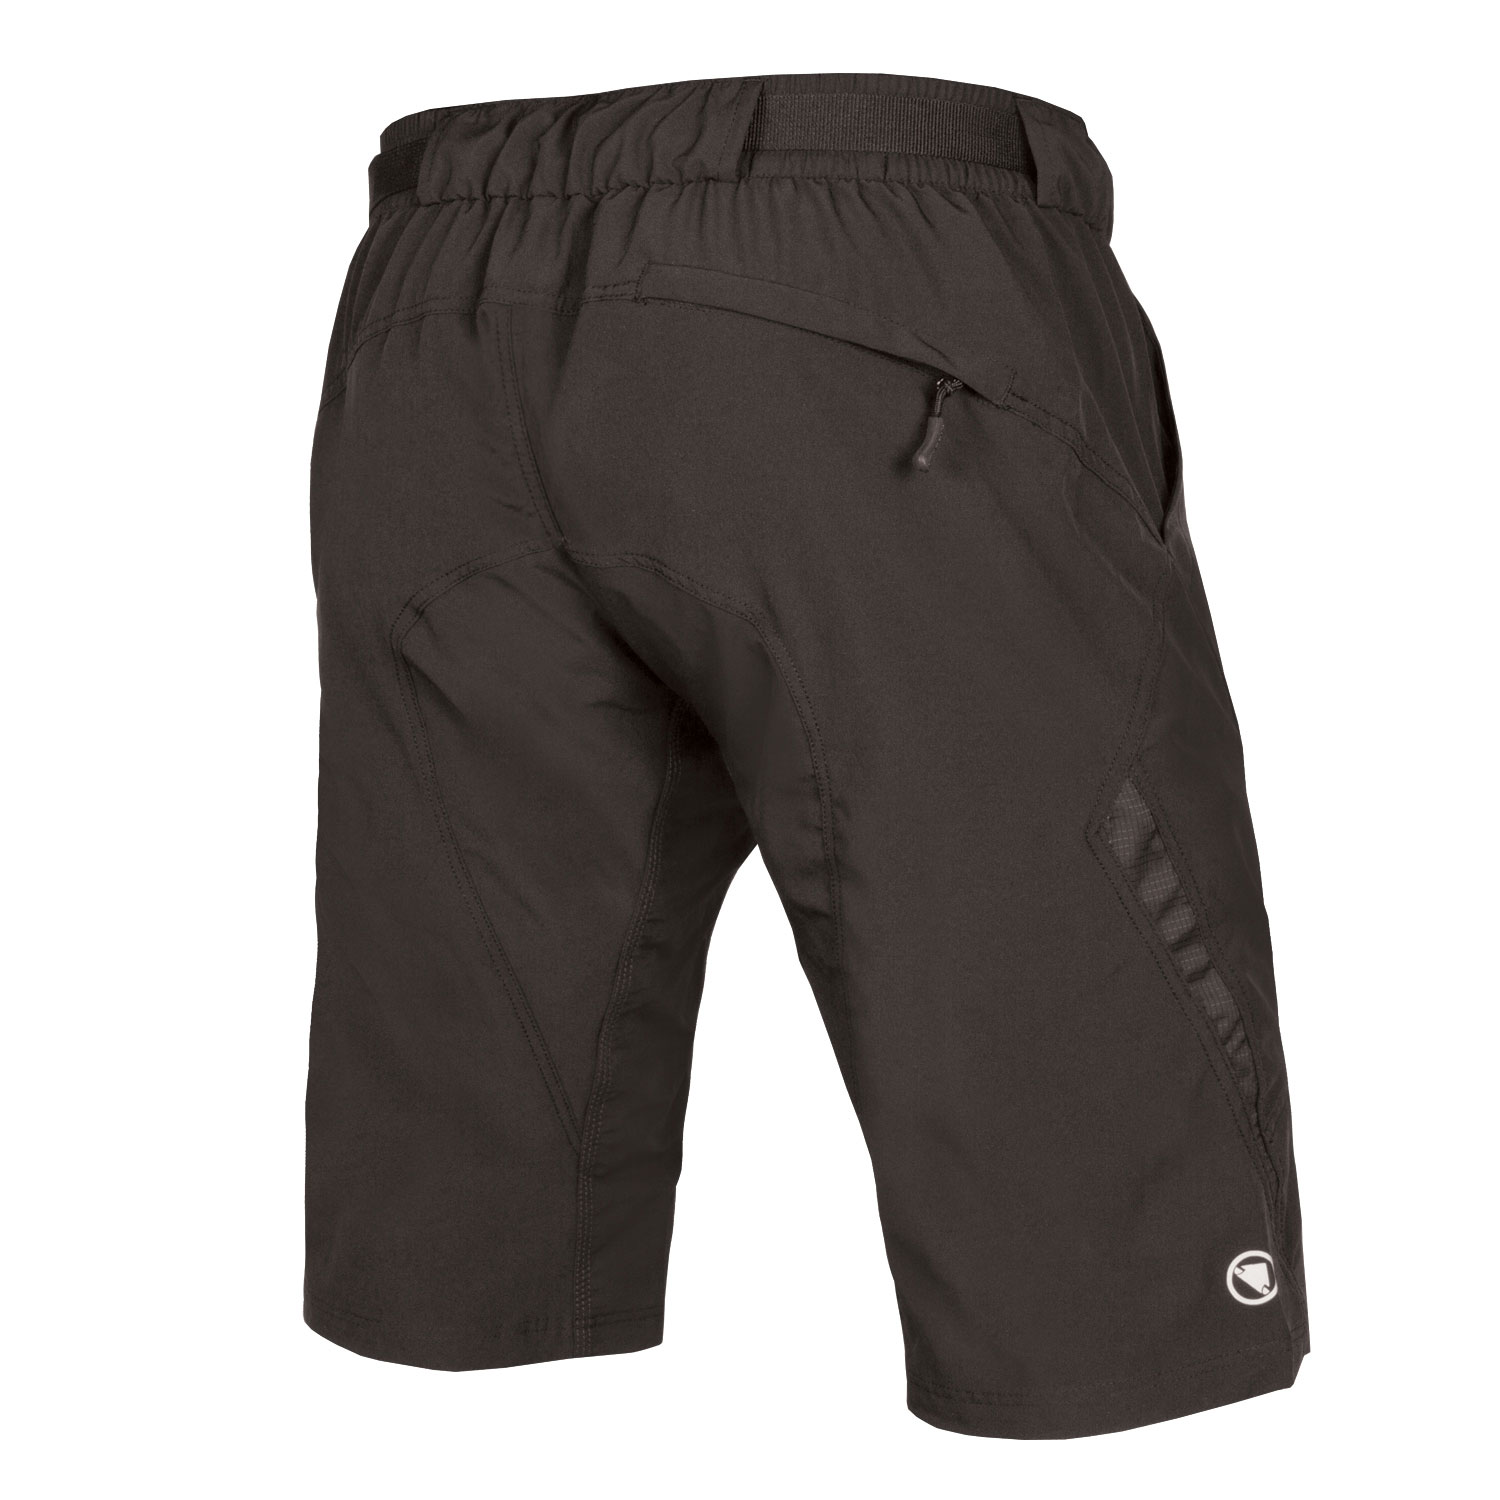 Hummvee Lite Short II with liner Black